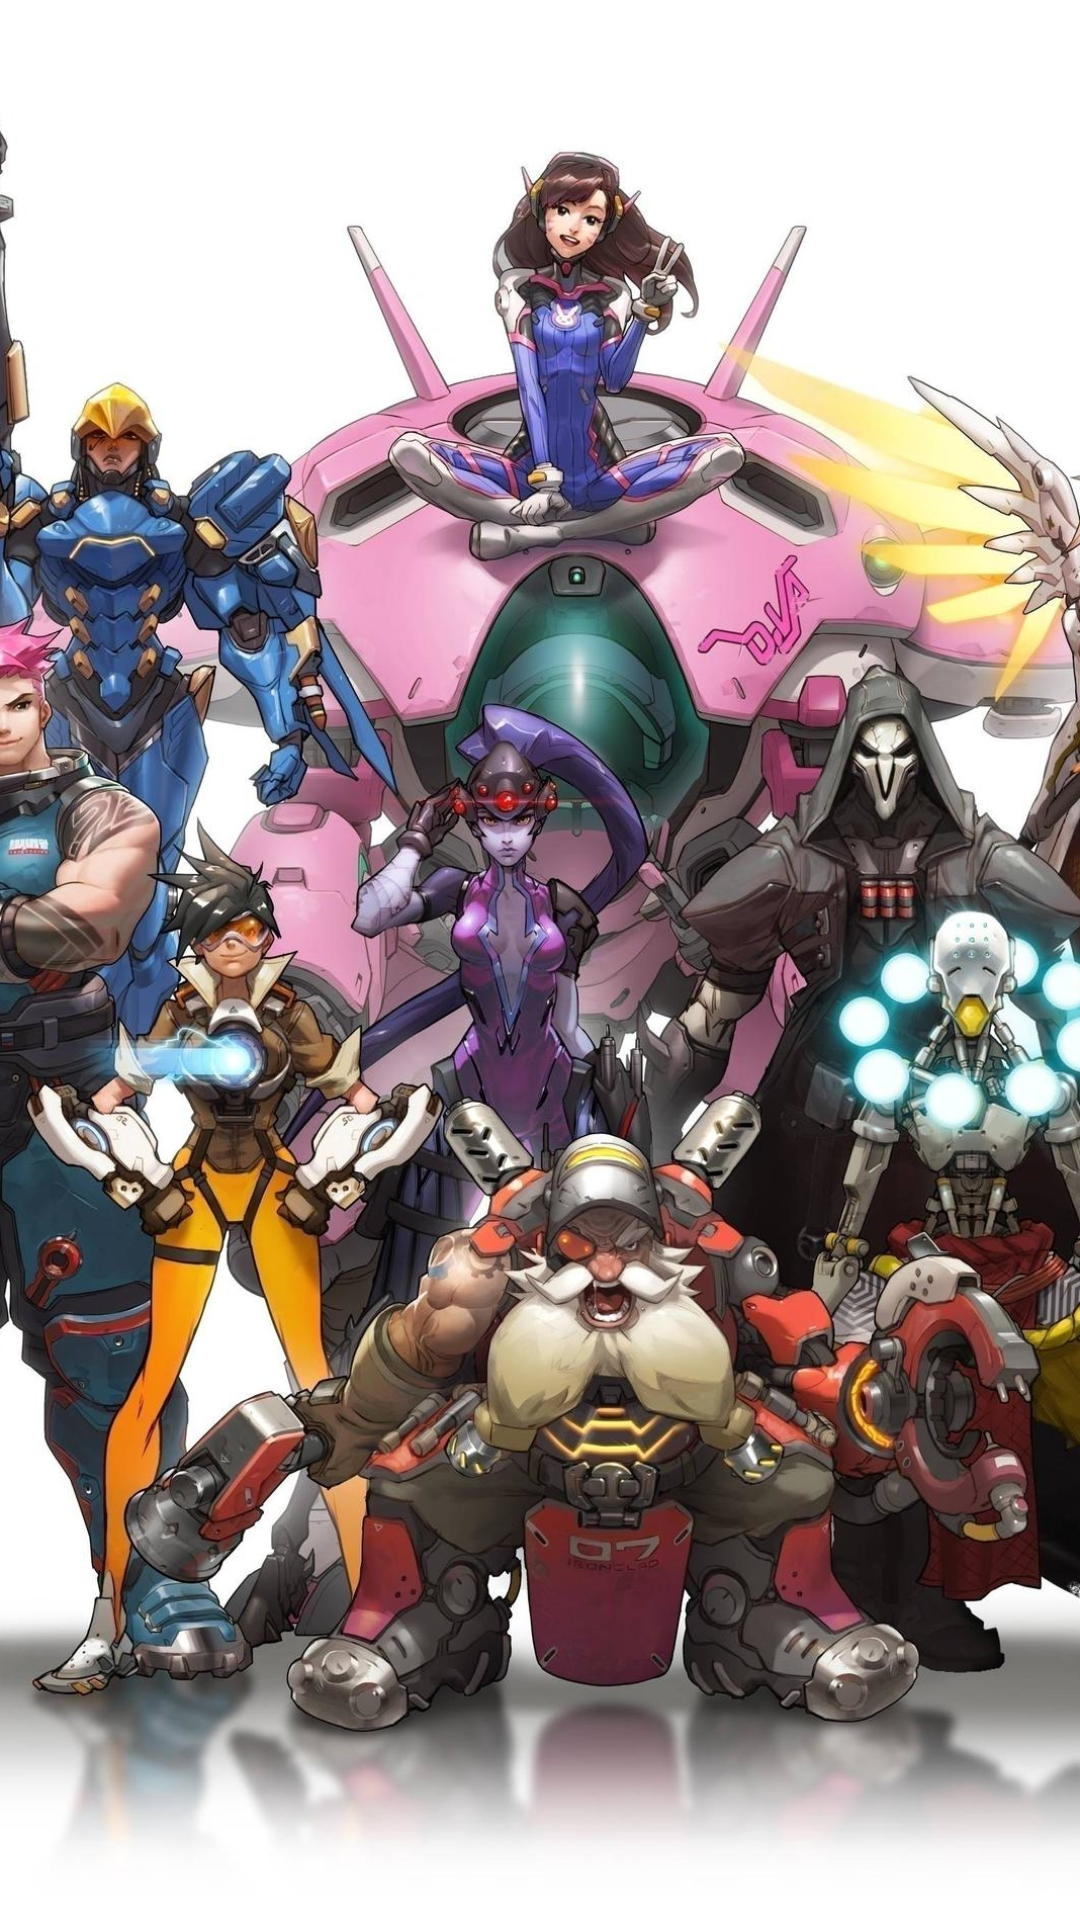 Video Gameoverwatch 1080x1920 Wallpaper Id 633394